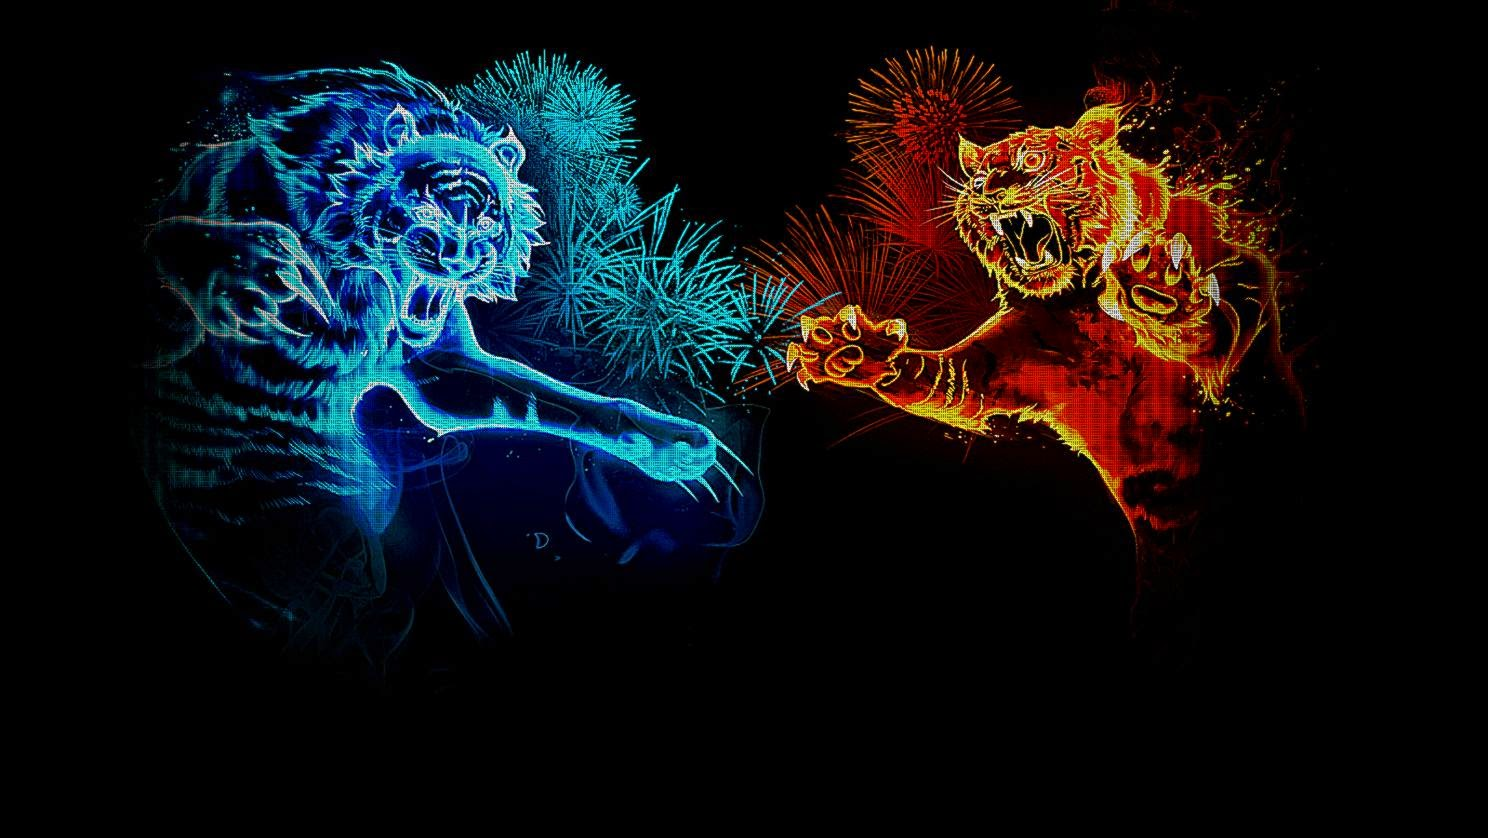 Abstract Animals Wallpapers Hd Fire And Ice Tigers 342535